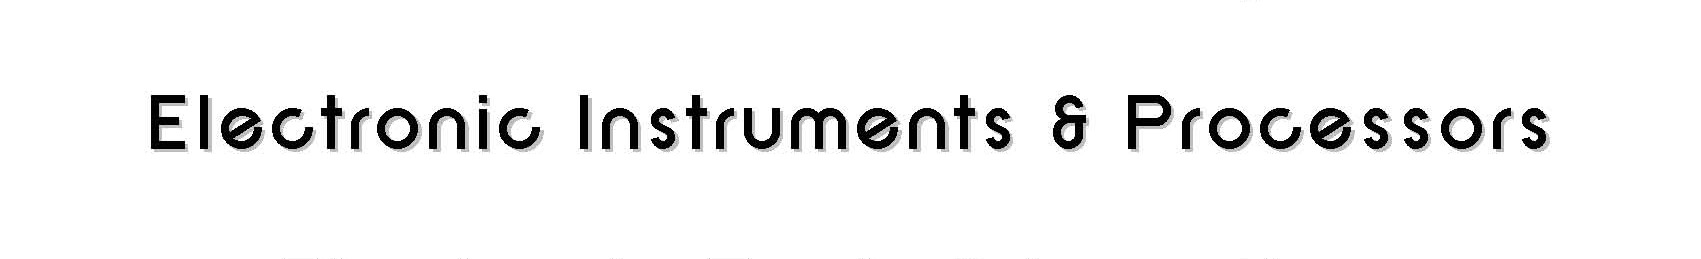 electronic instruments & processors